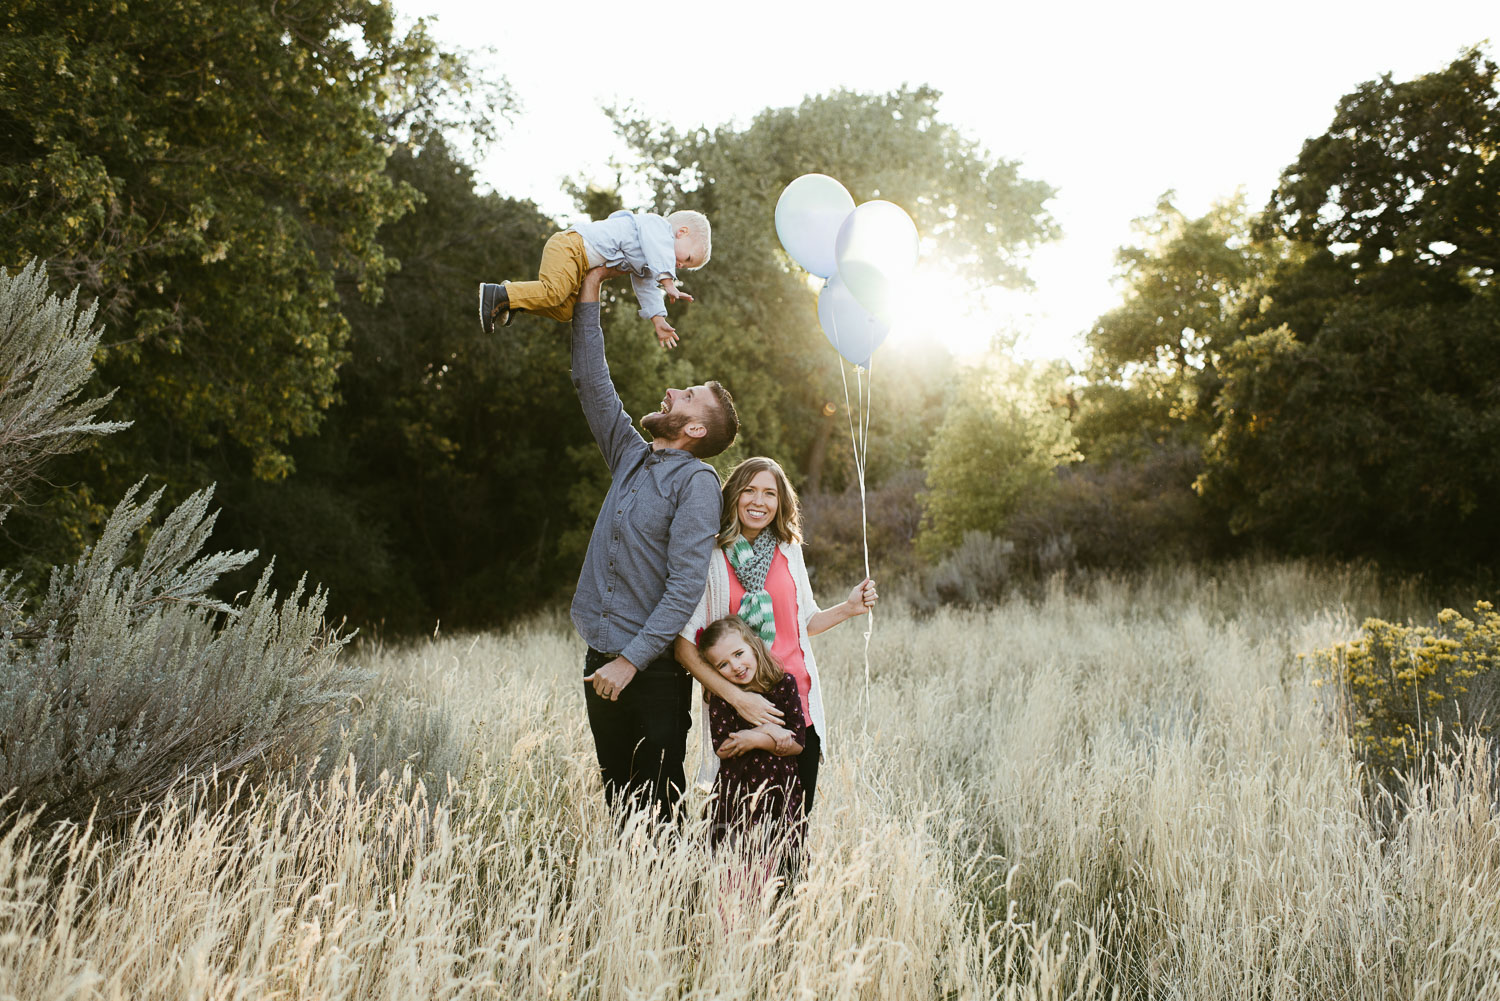 The Huizenga's, taken in October, as we celebrated the announcement of their 3rd child.